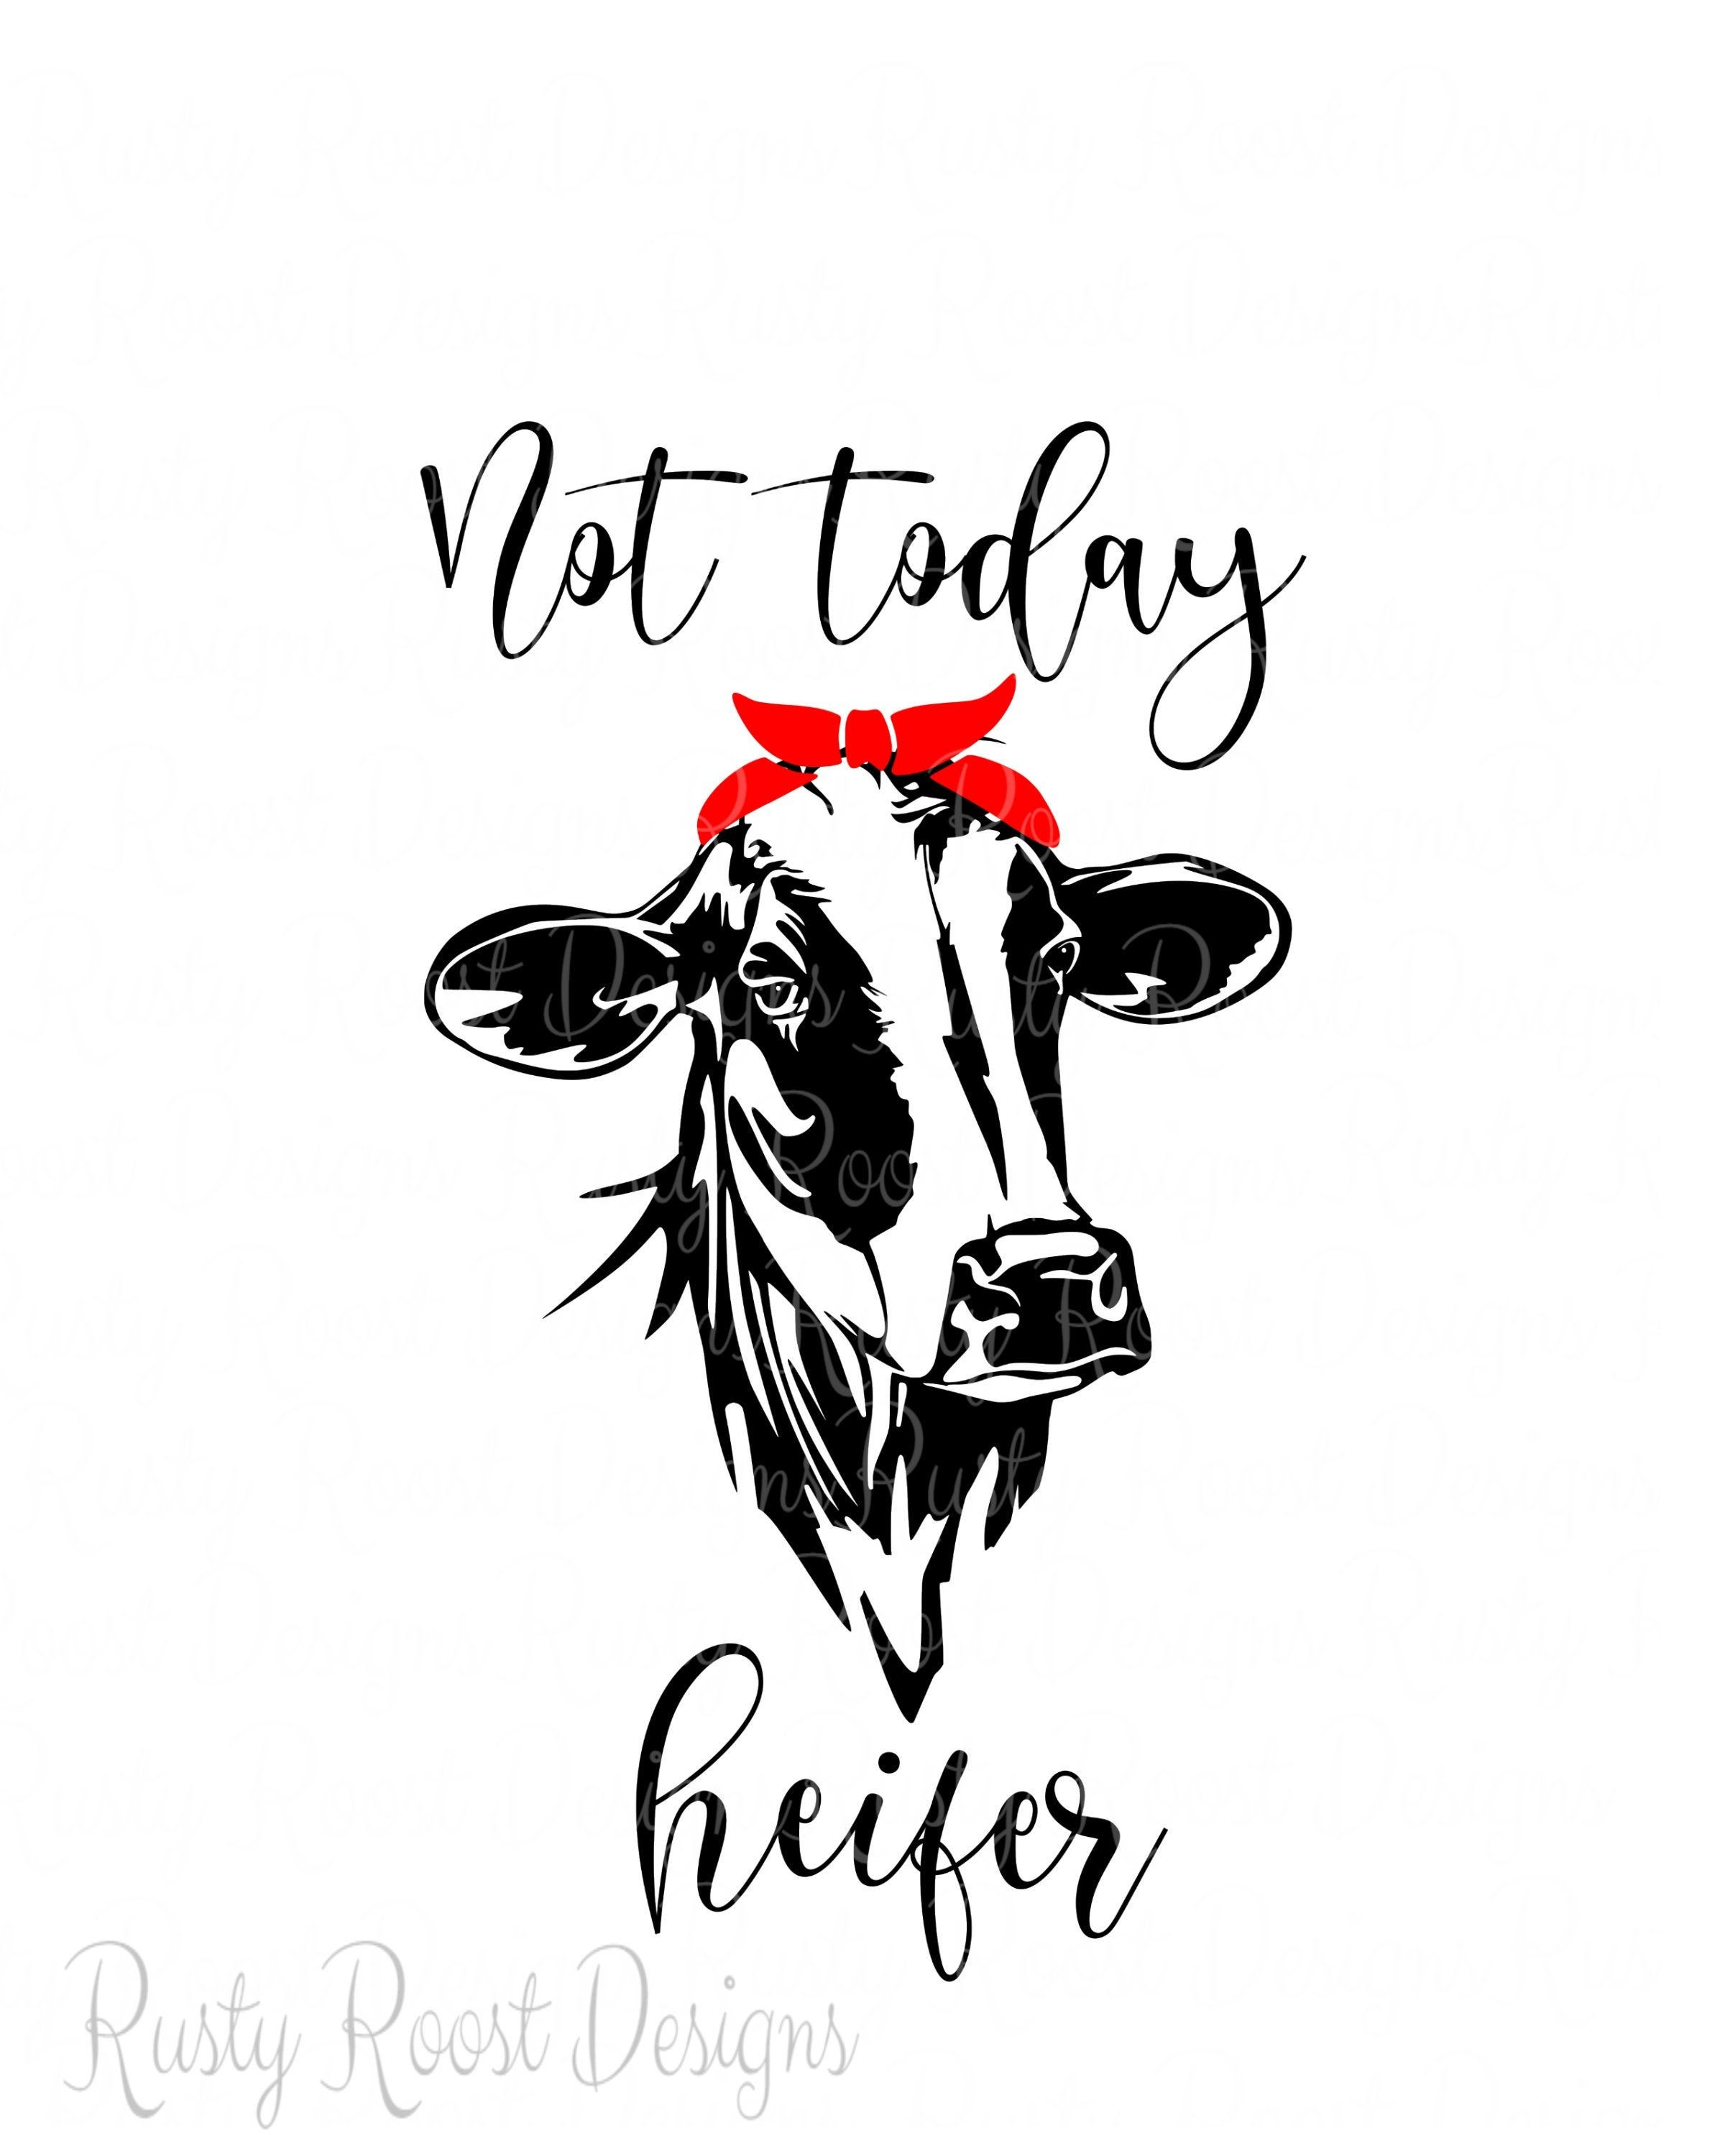 not today heifer svg #373, Download drawings